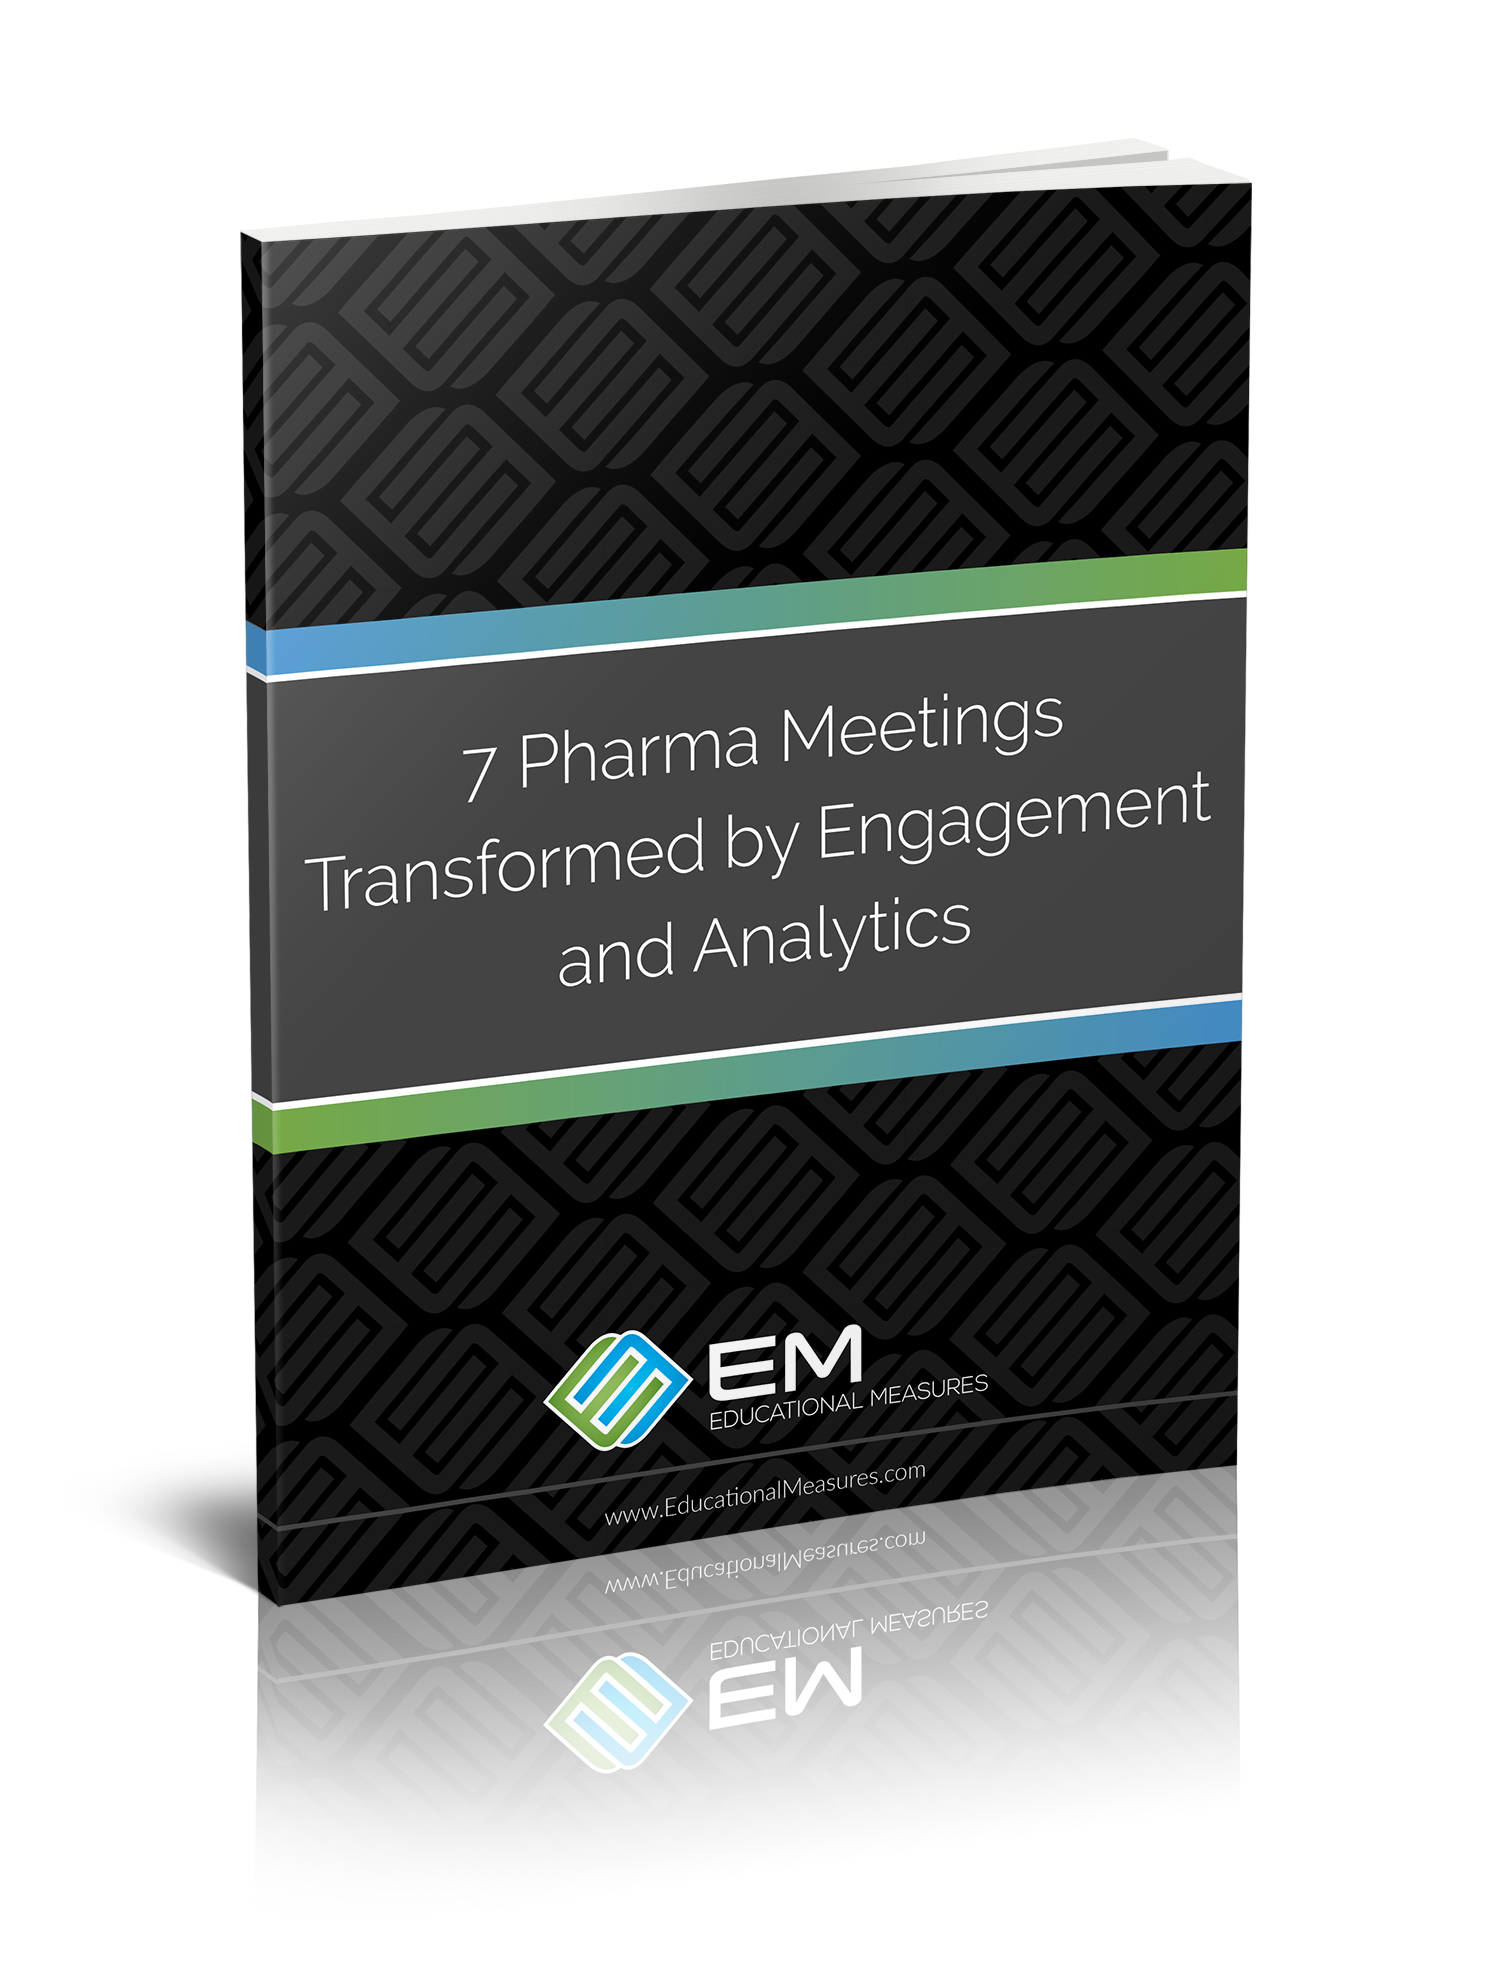 7 Pharma Meetings Transformed by Engagement and Analytics